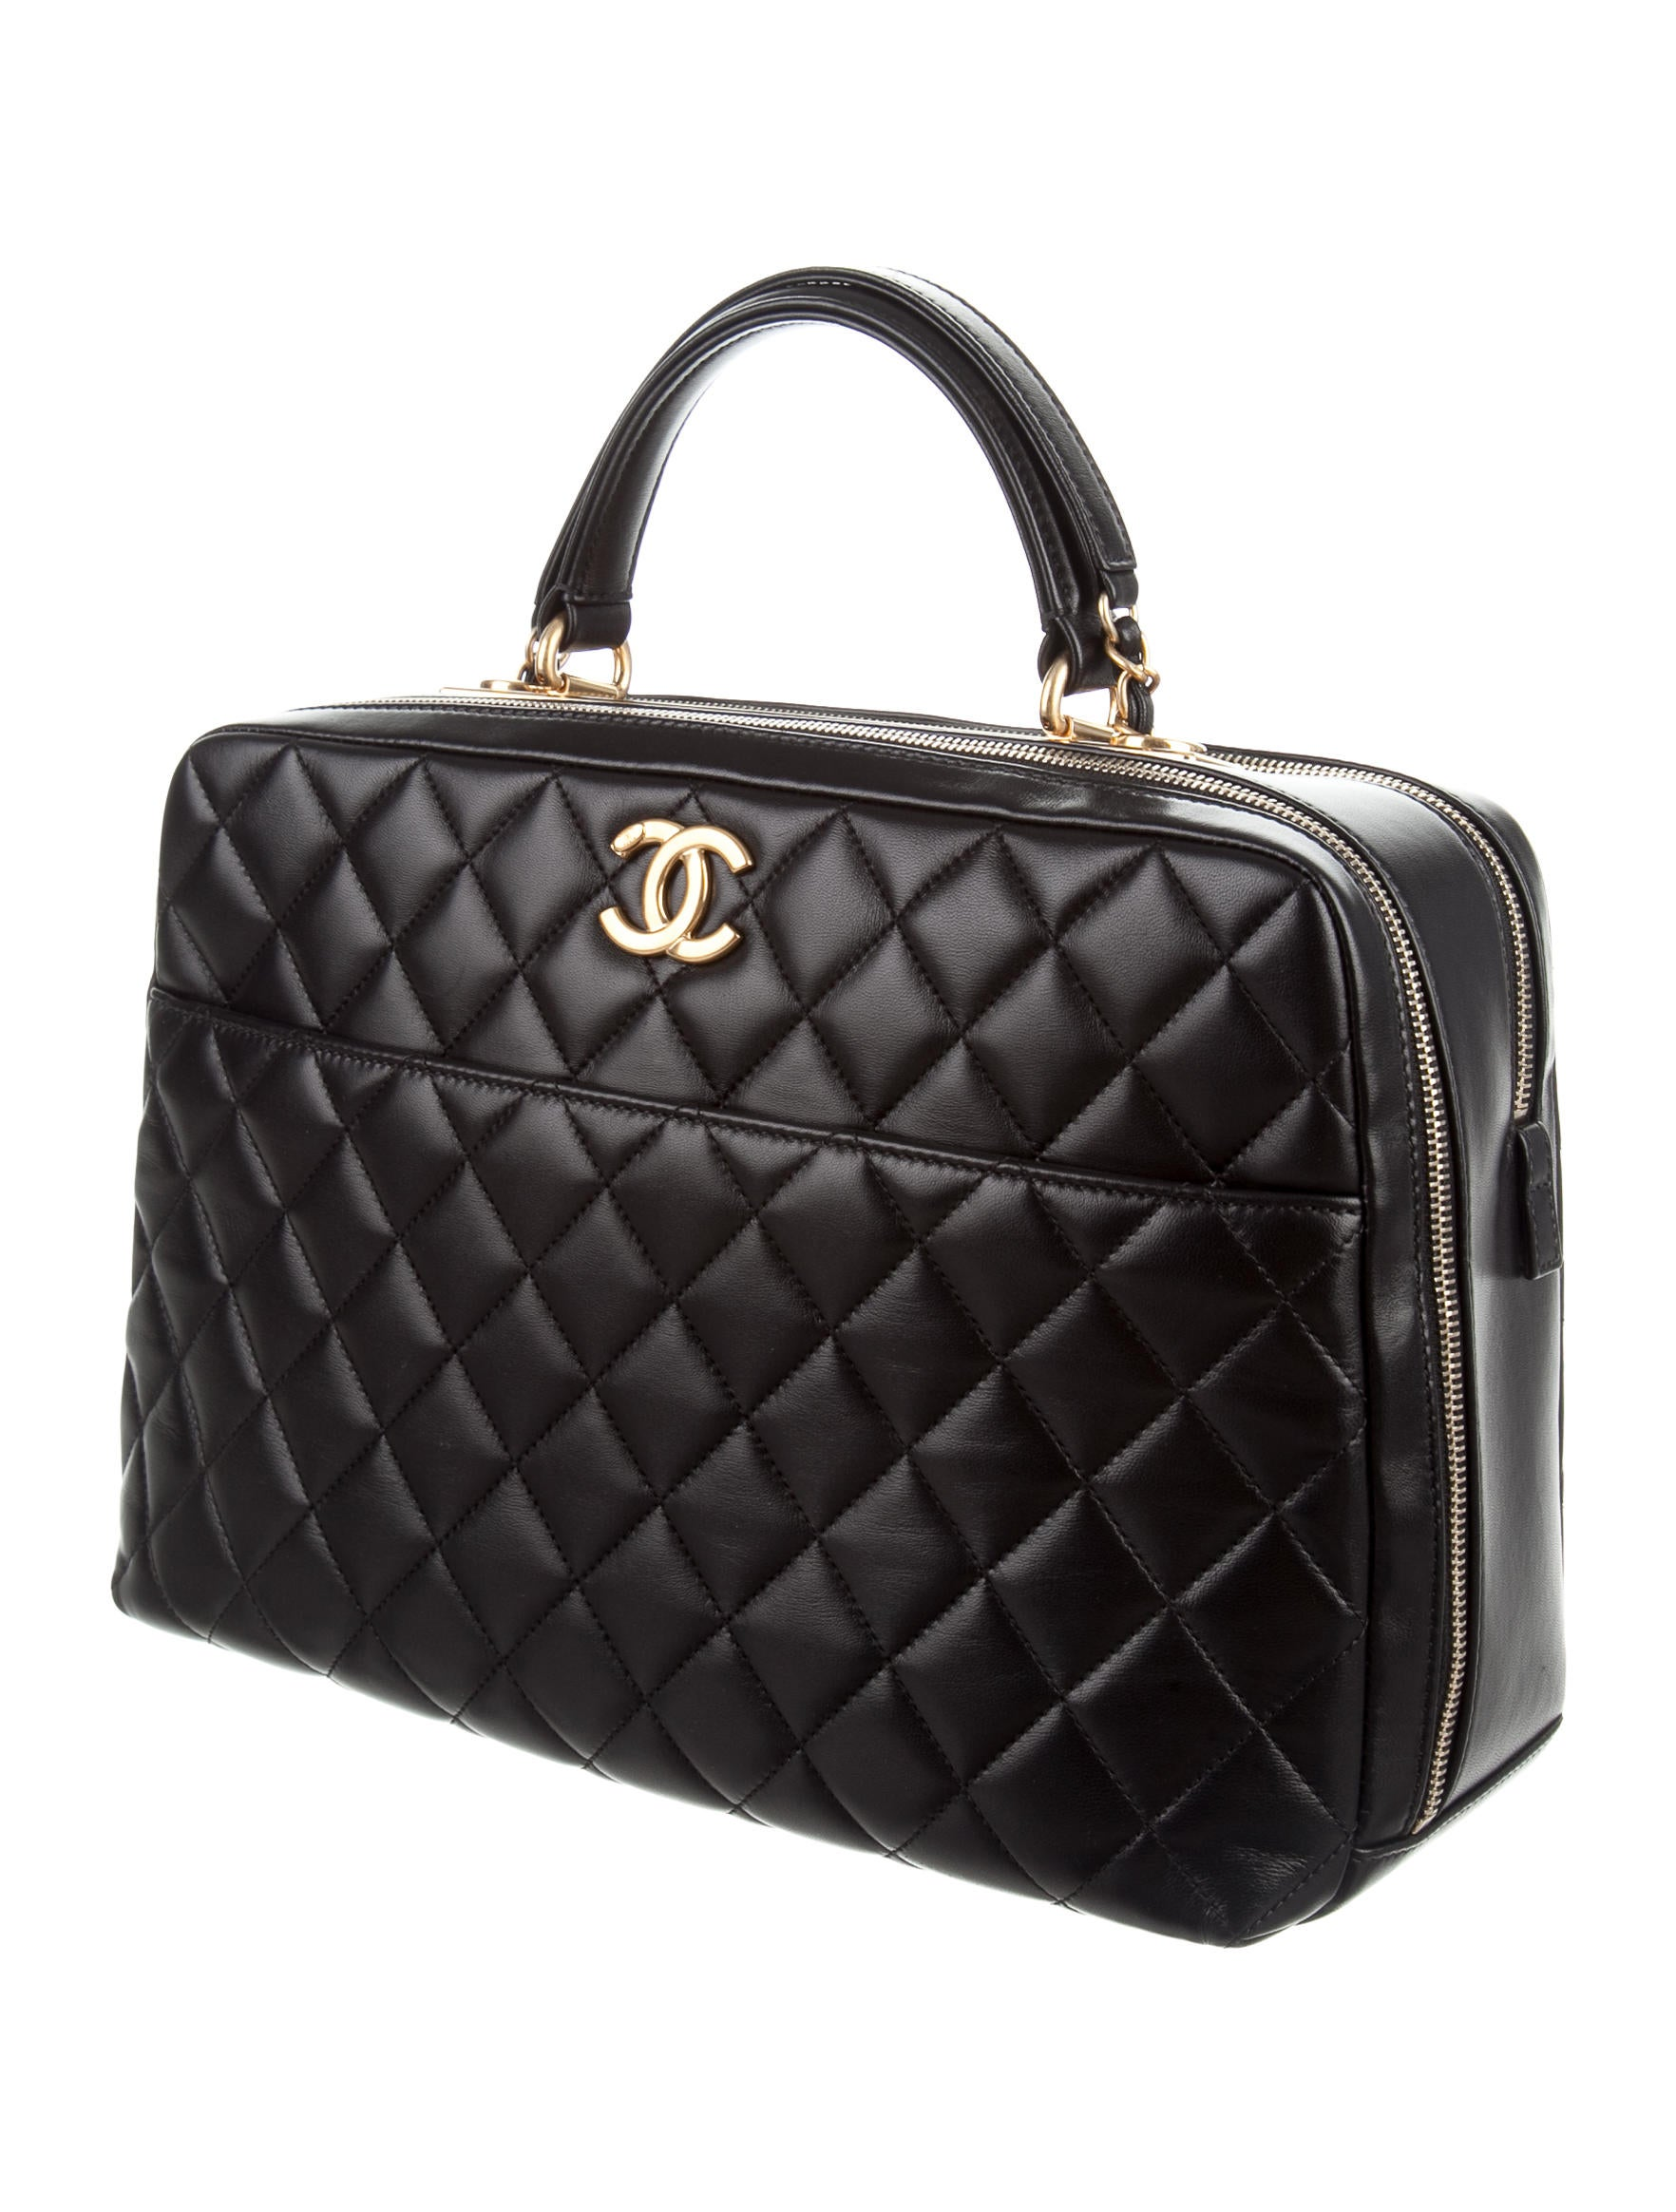 2f26646a2768 Large Chanel Bags 2015 | Stanford Center for Opportunity Policy in ...